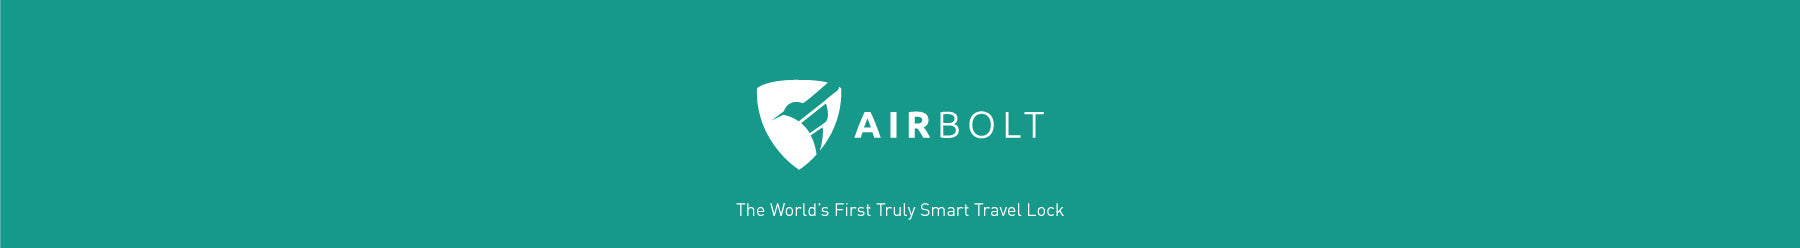 AirBolt : Smart Travel Lock